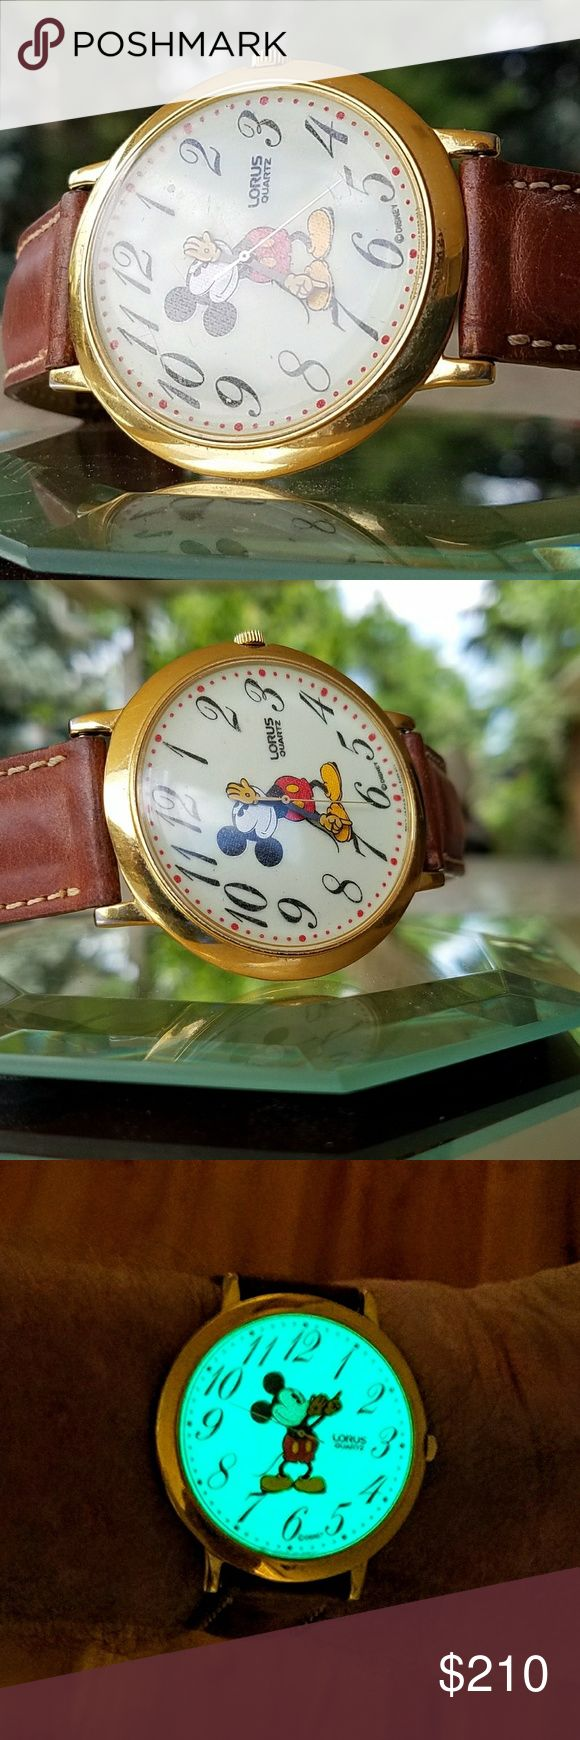 Vintage Mickey Mouse big face watch Very rare vintage Mickey Mouse Lorus watch hands are the hour and minutes very rare especially big face to loris automatic illumination at night very rare watch don't let it get away you want to see one like this for a long time LORUS Accessories Watches